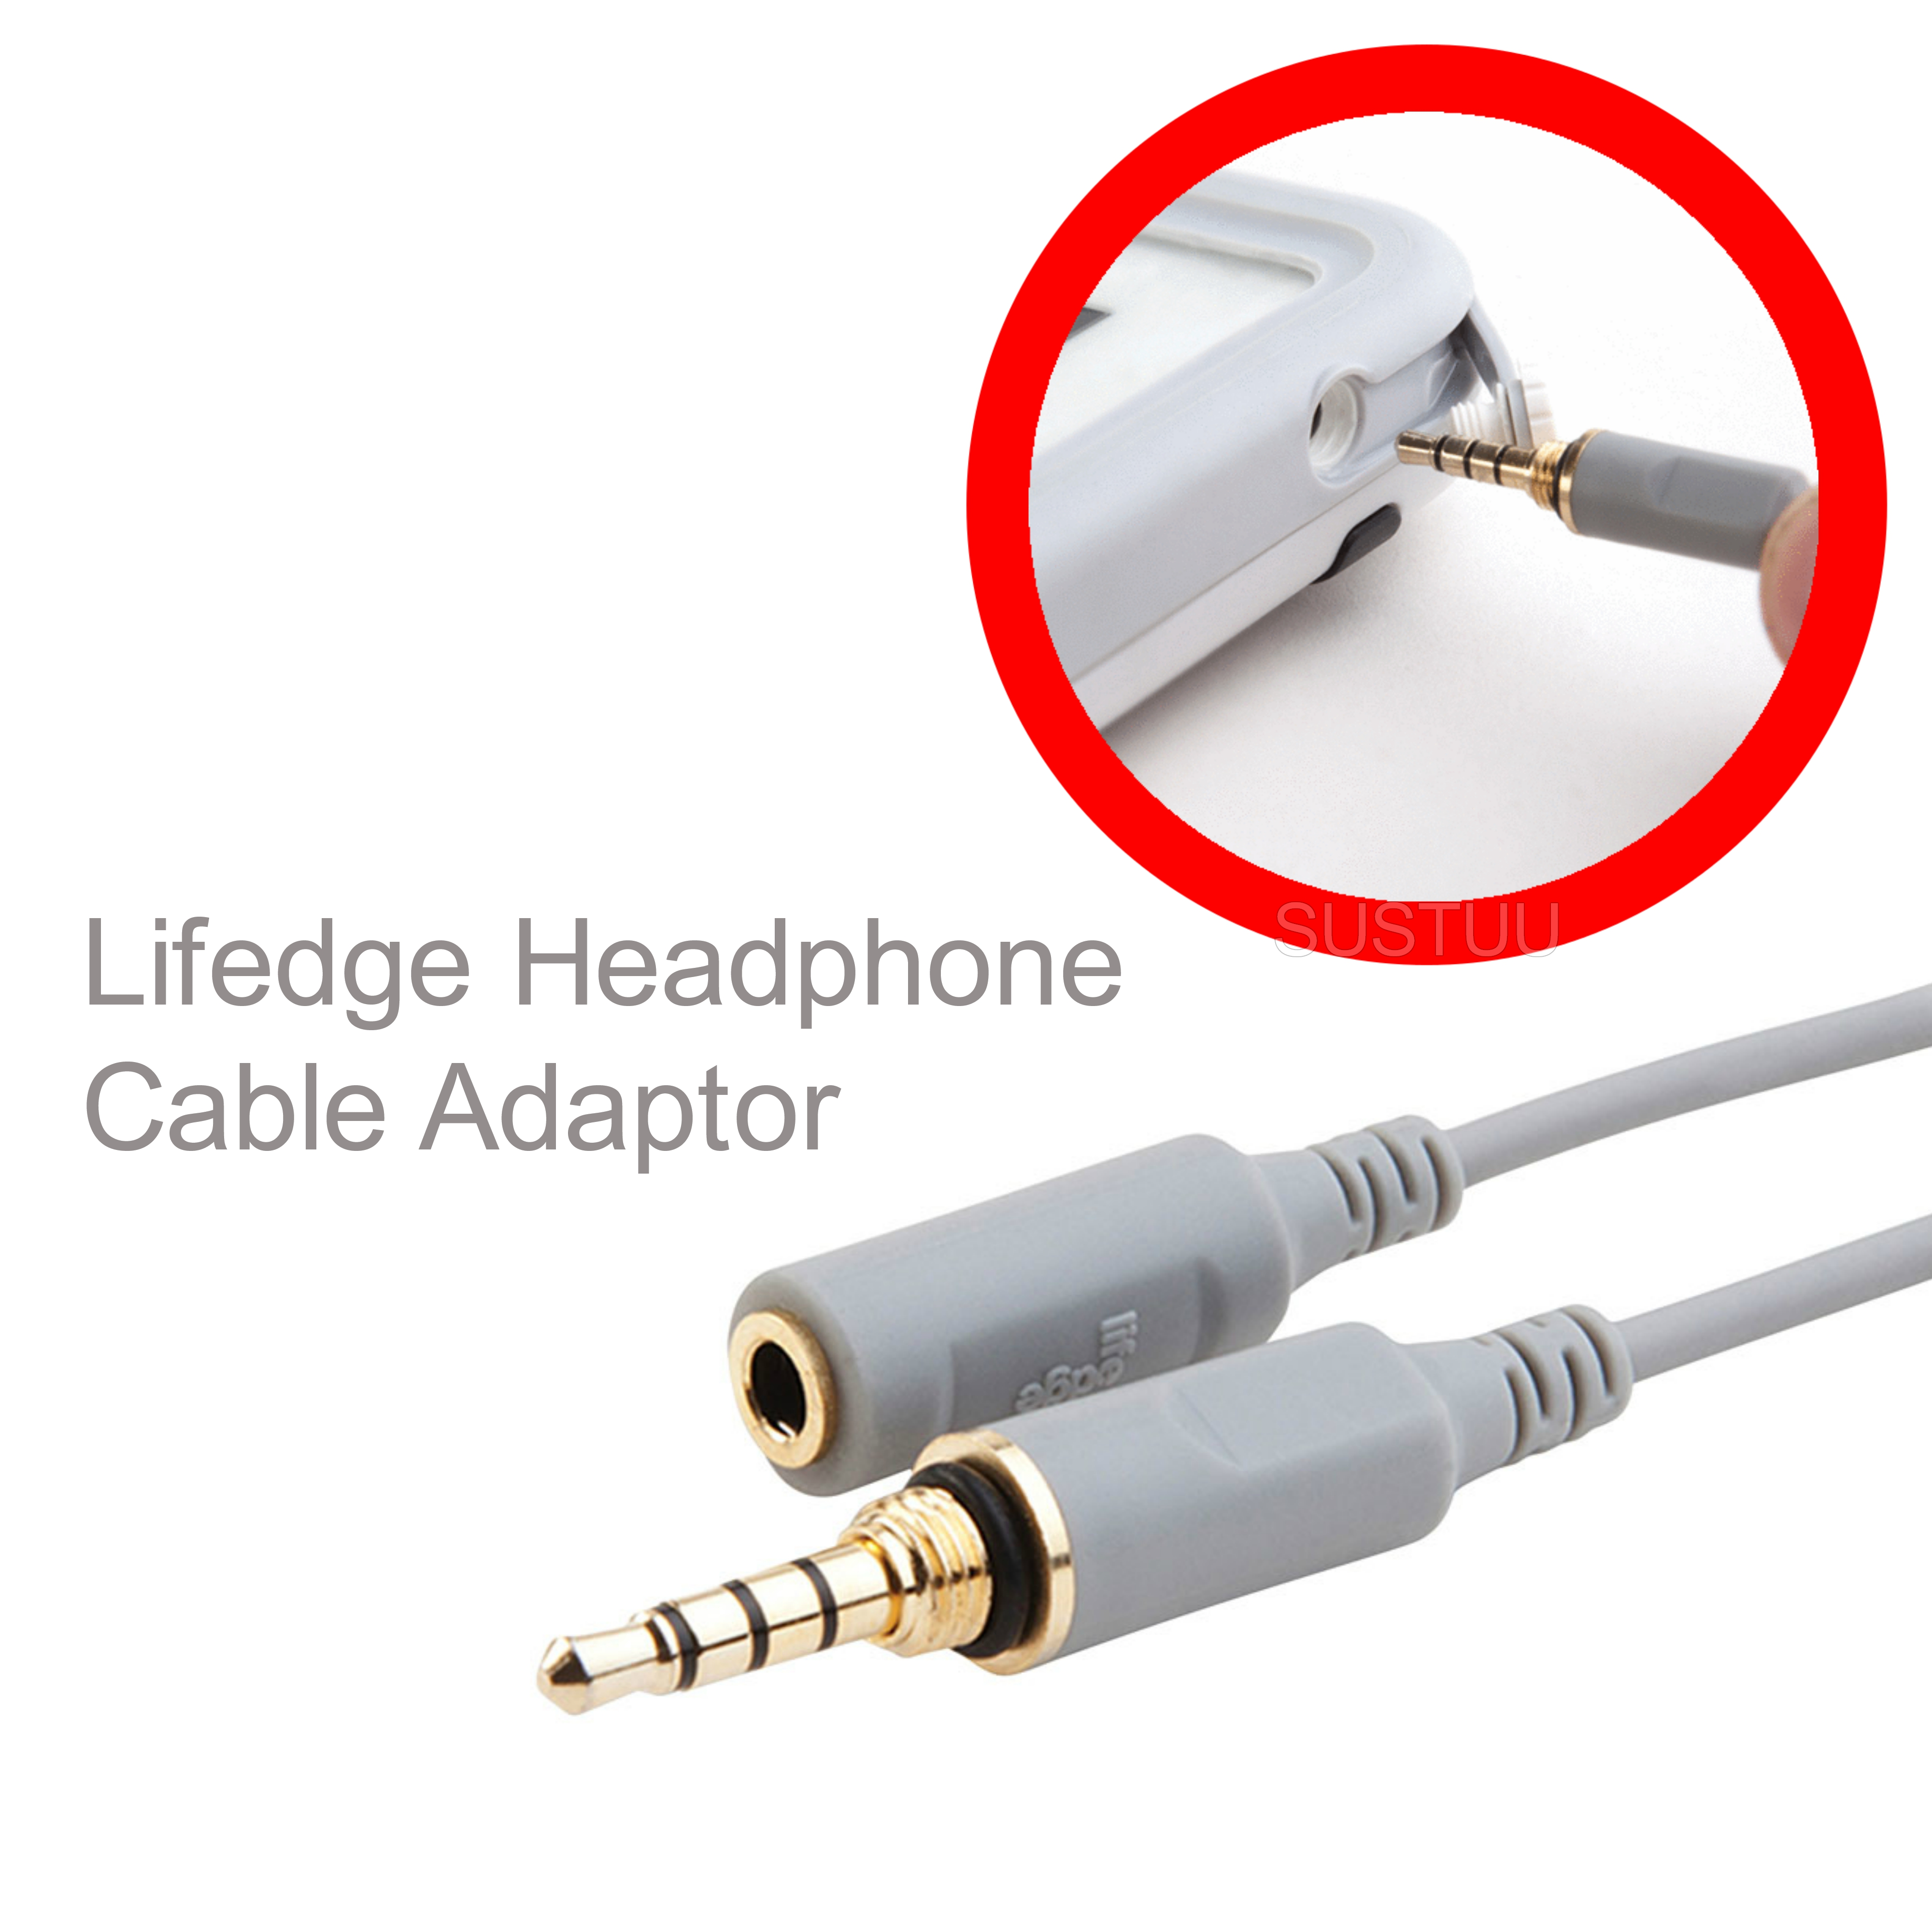 Lifedge Headphone Cable Adaptor Gold Plated Premium Quality For Apple & Other Standard Headphones